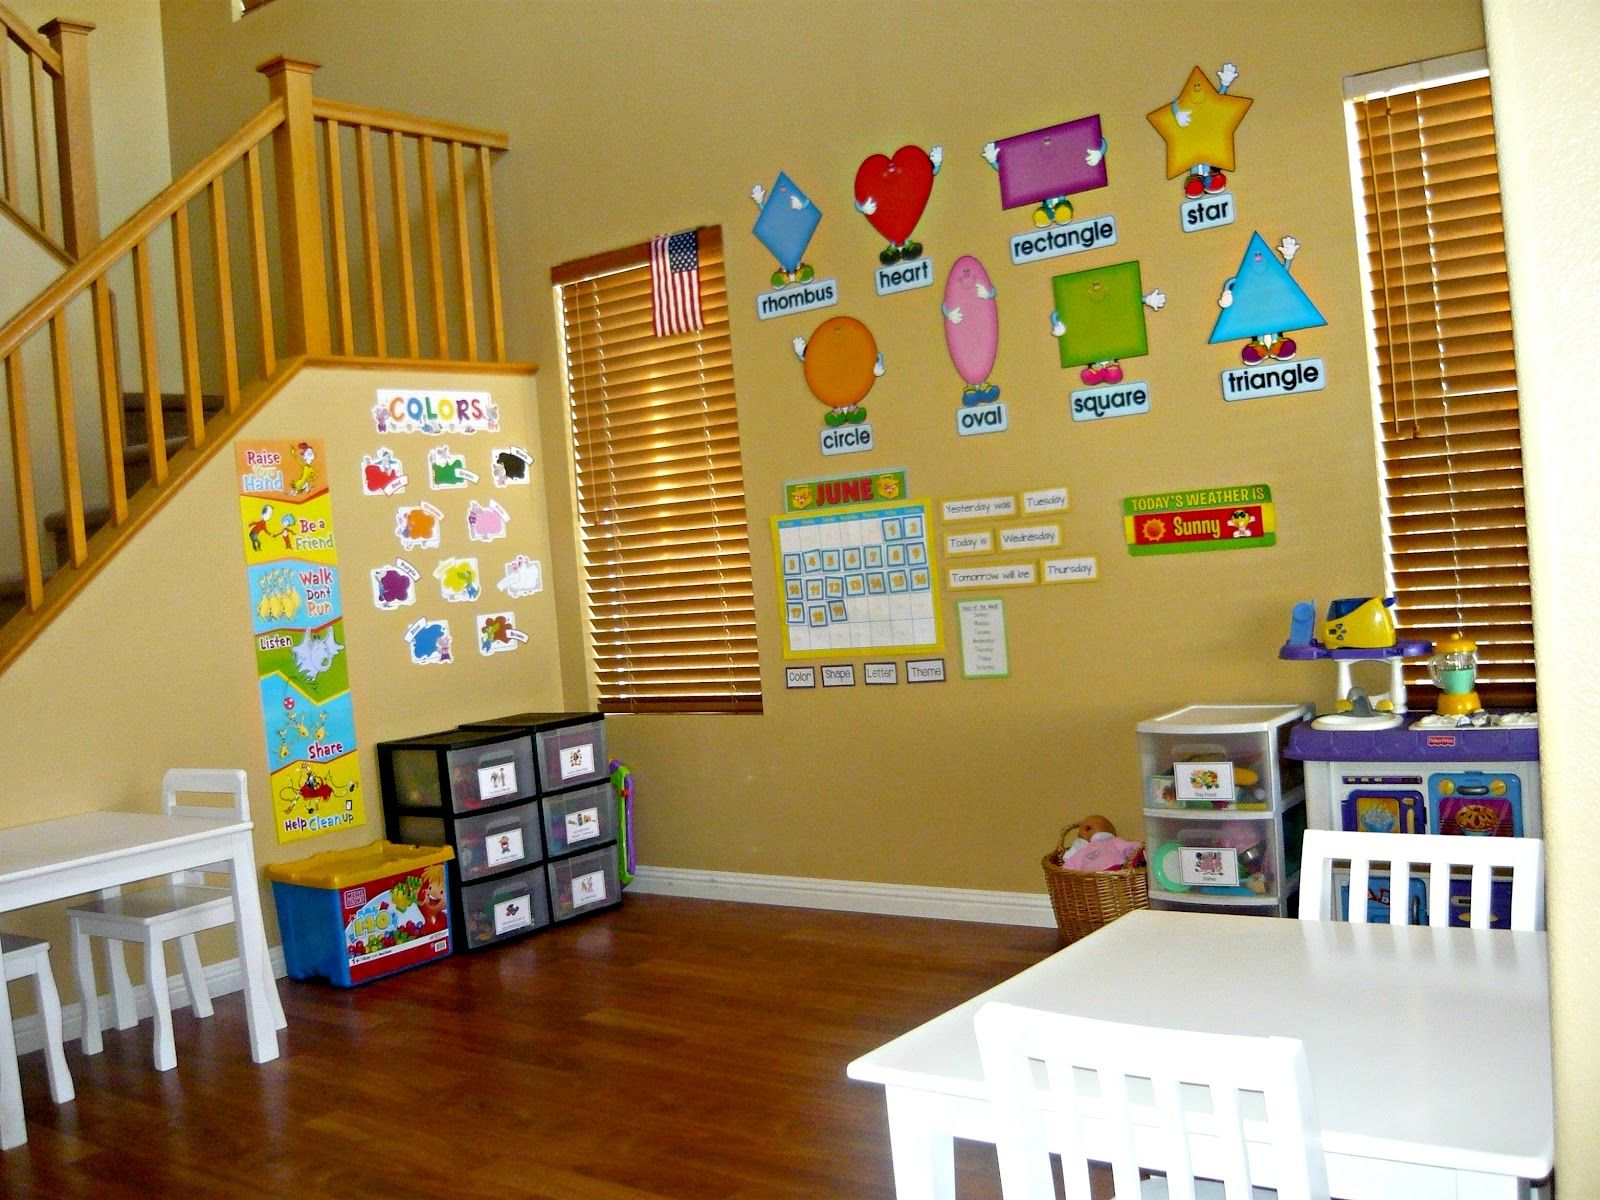 Kids Playing Room With Preschool Classroom Wall Decorations Design Ideas